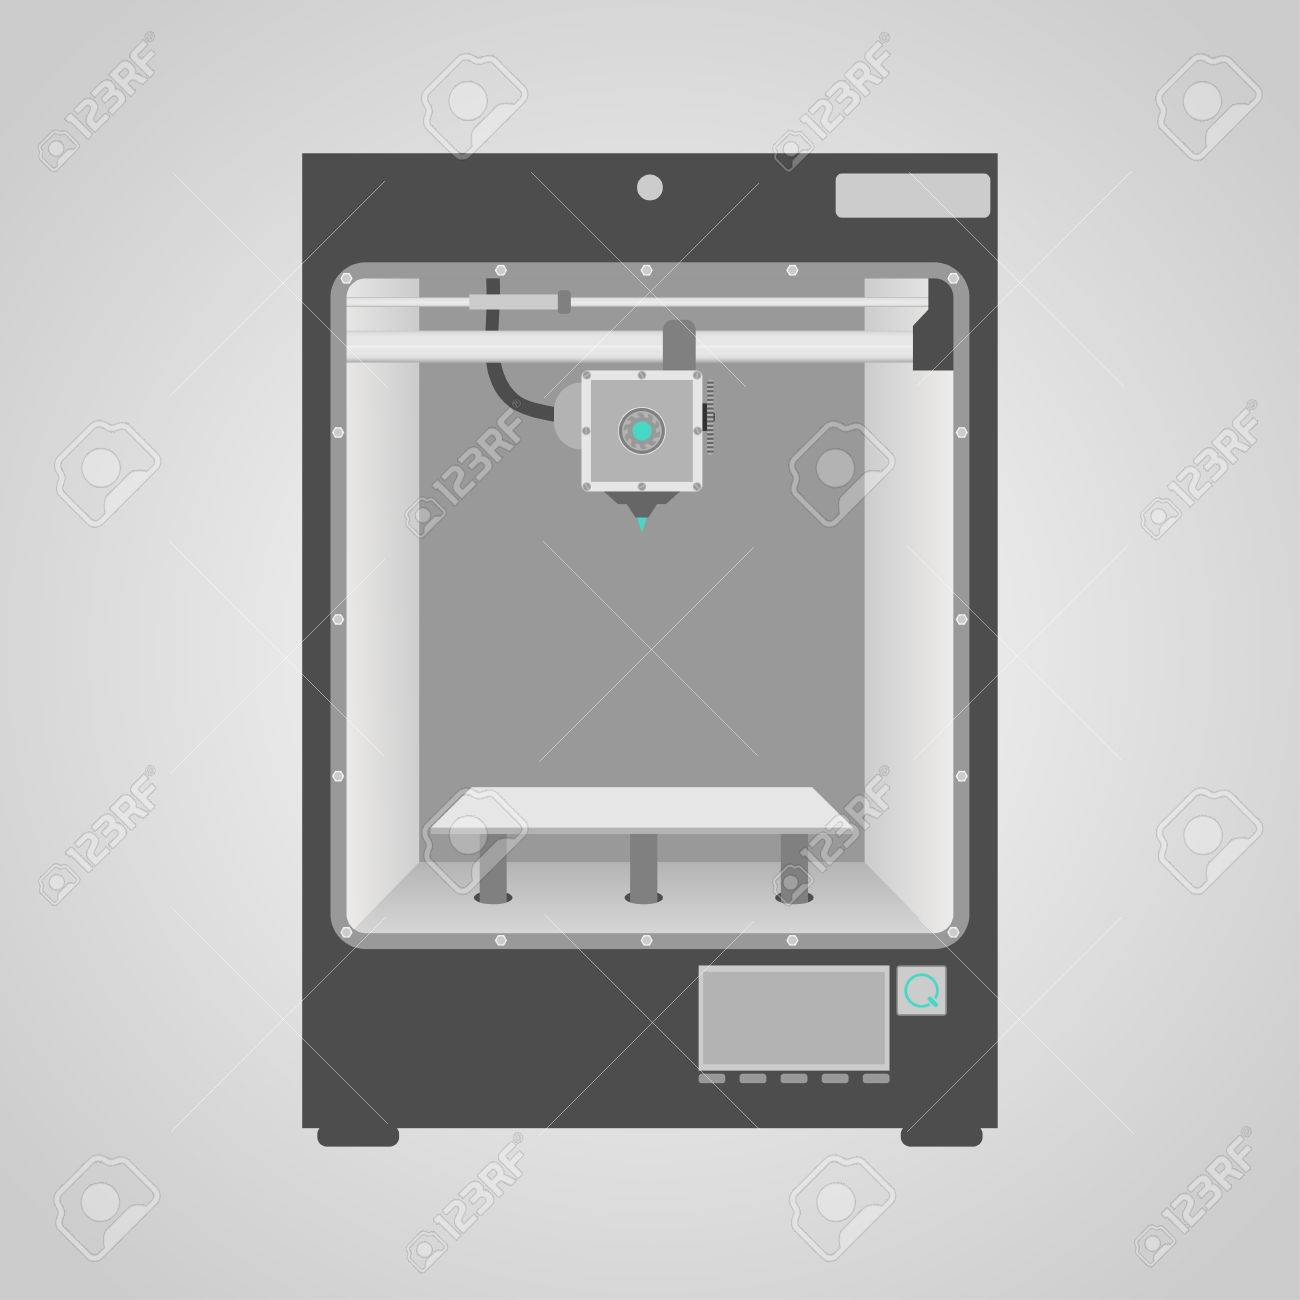 Prototype model of 3d printer in gray and white colors Easy to place inside printer any of your product to demonstrate new 3d printing technology - 26075913